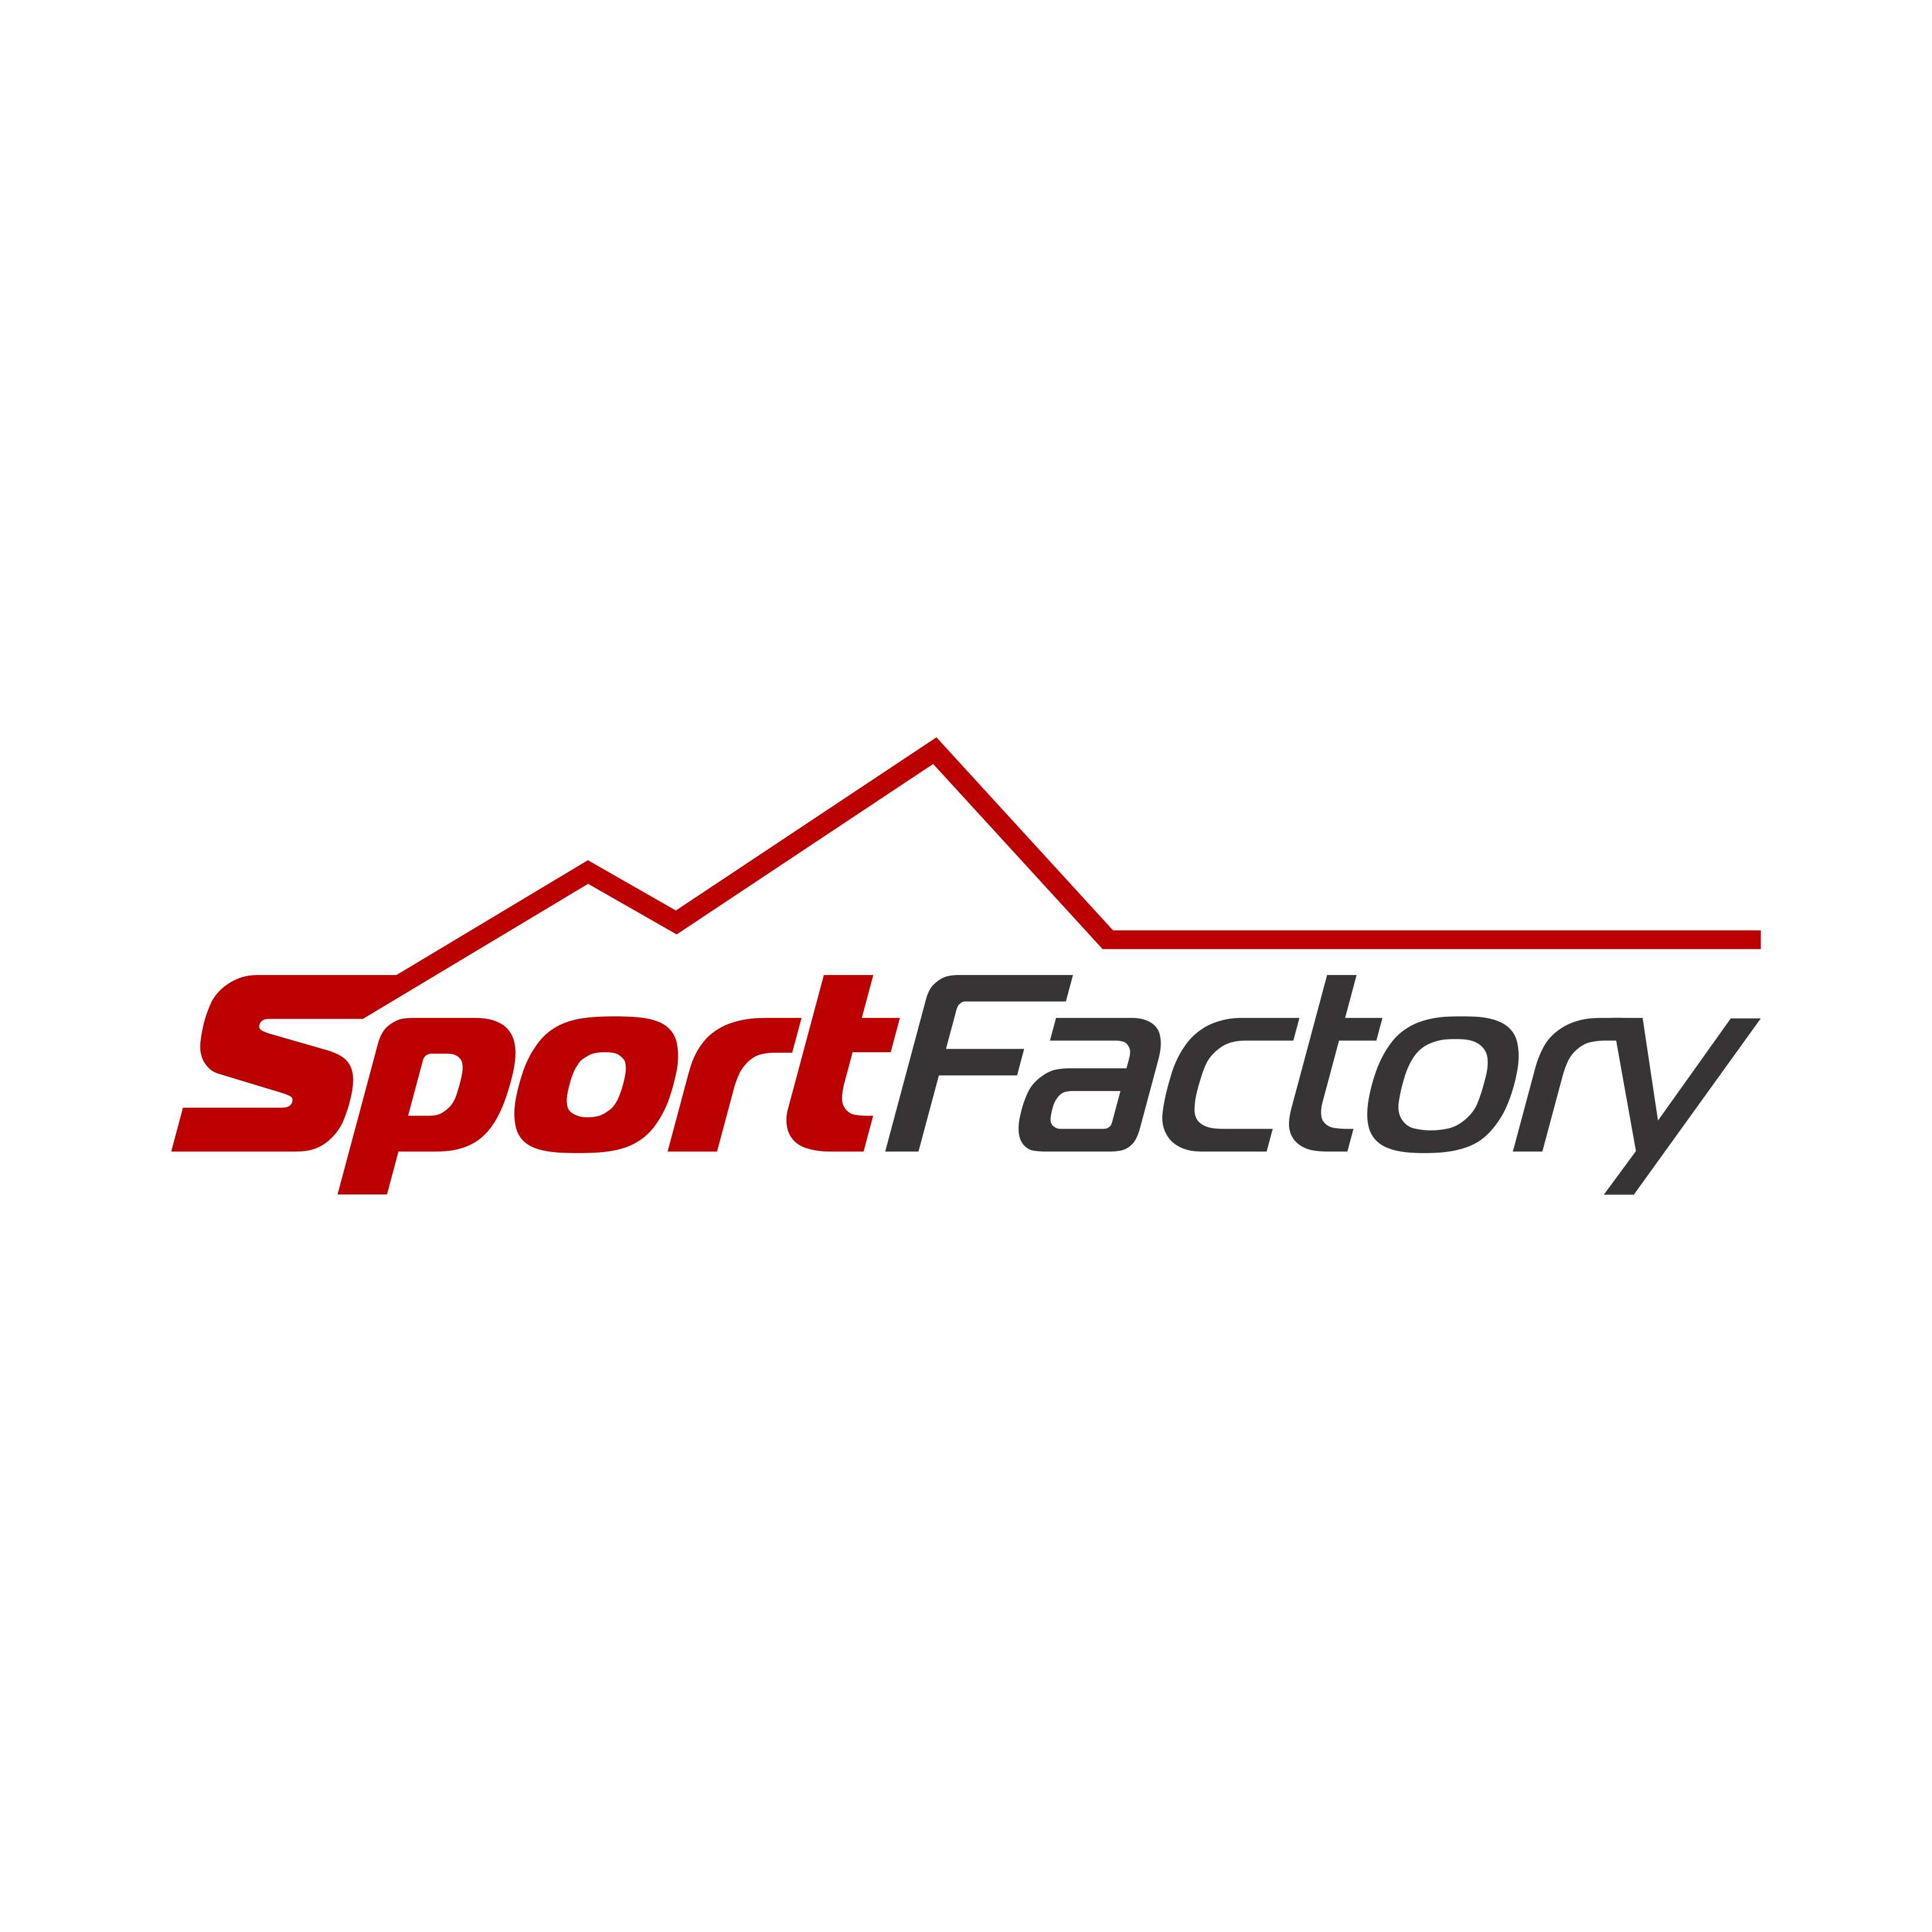 The Sport Factory